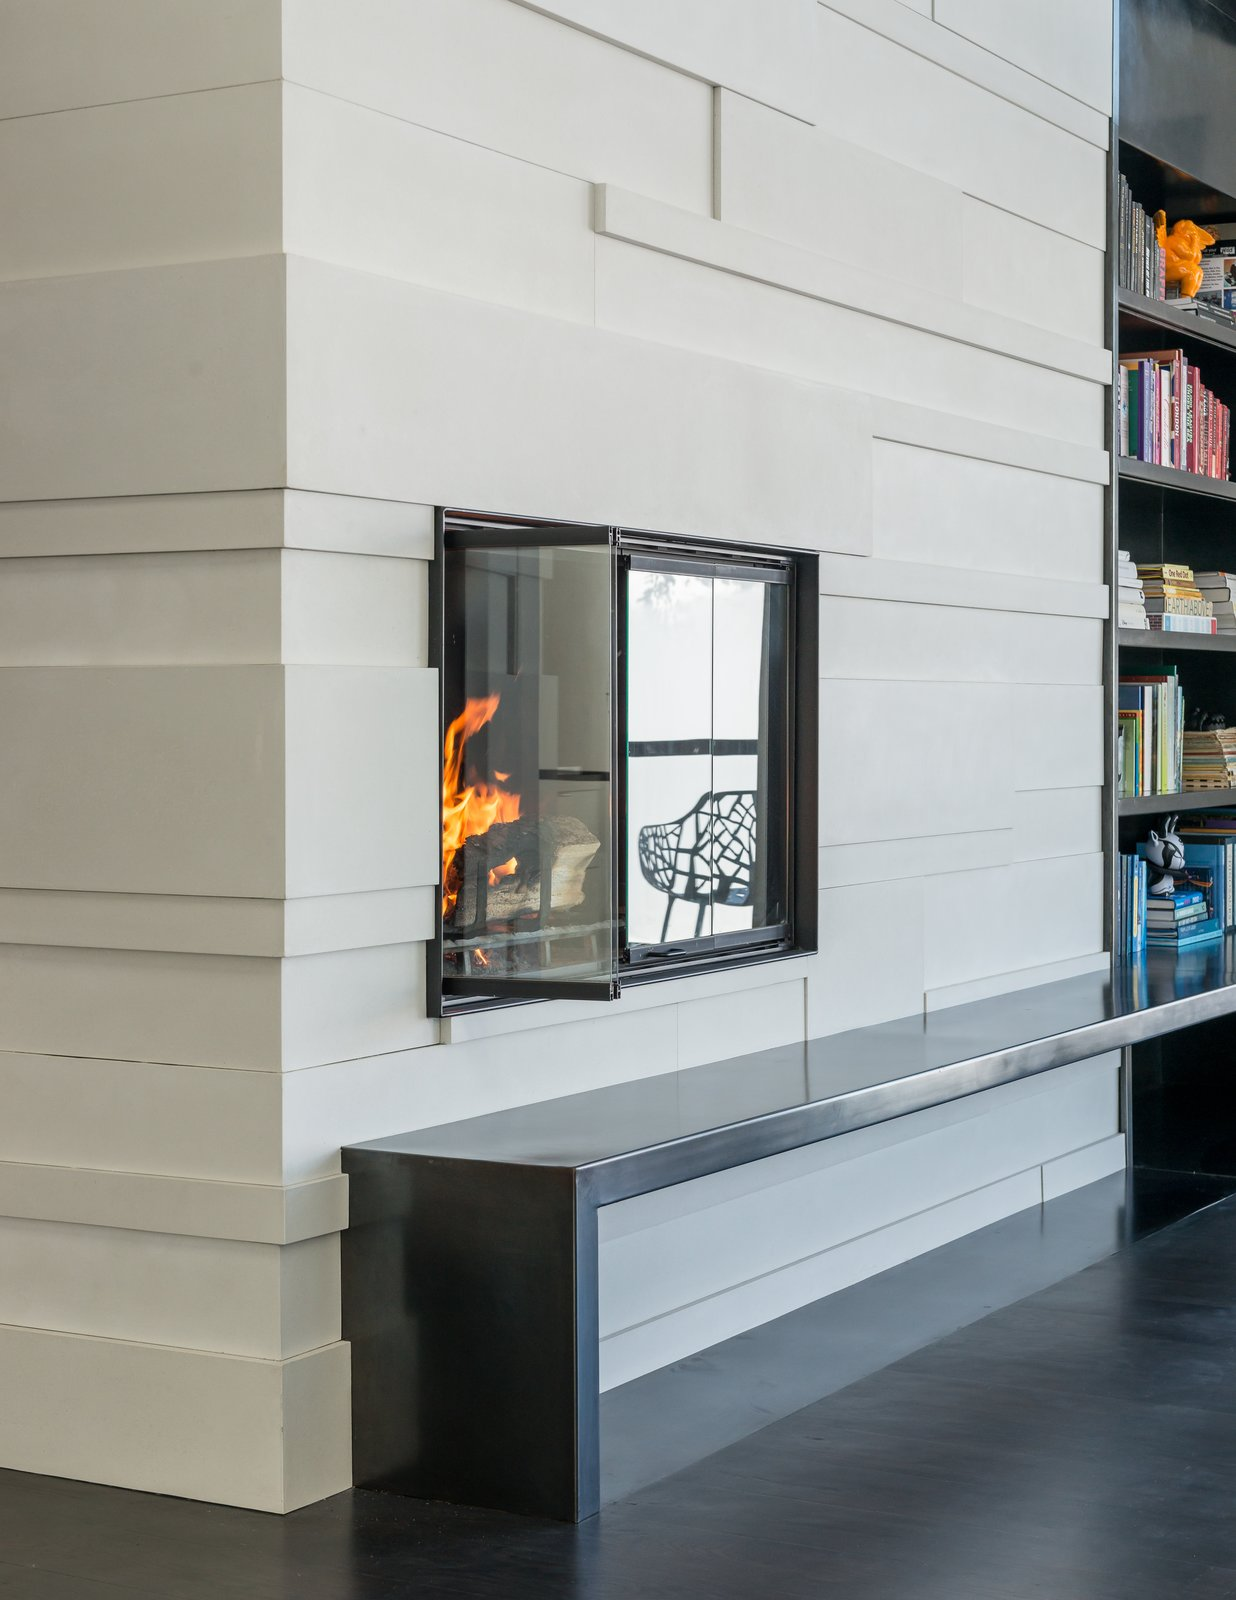 Custom concrete tiles and a steel hearth complete the fireplace surround.  San Francisco Meets Jackson Hole in a Modern Renovation